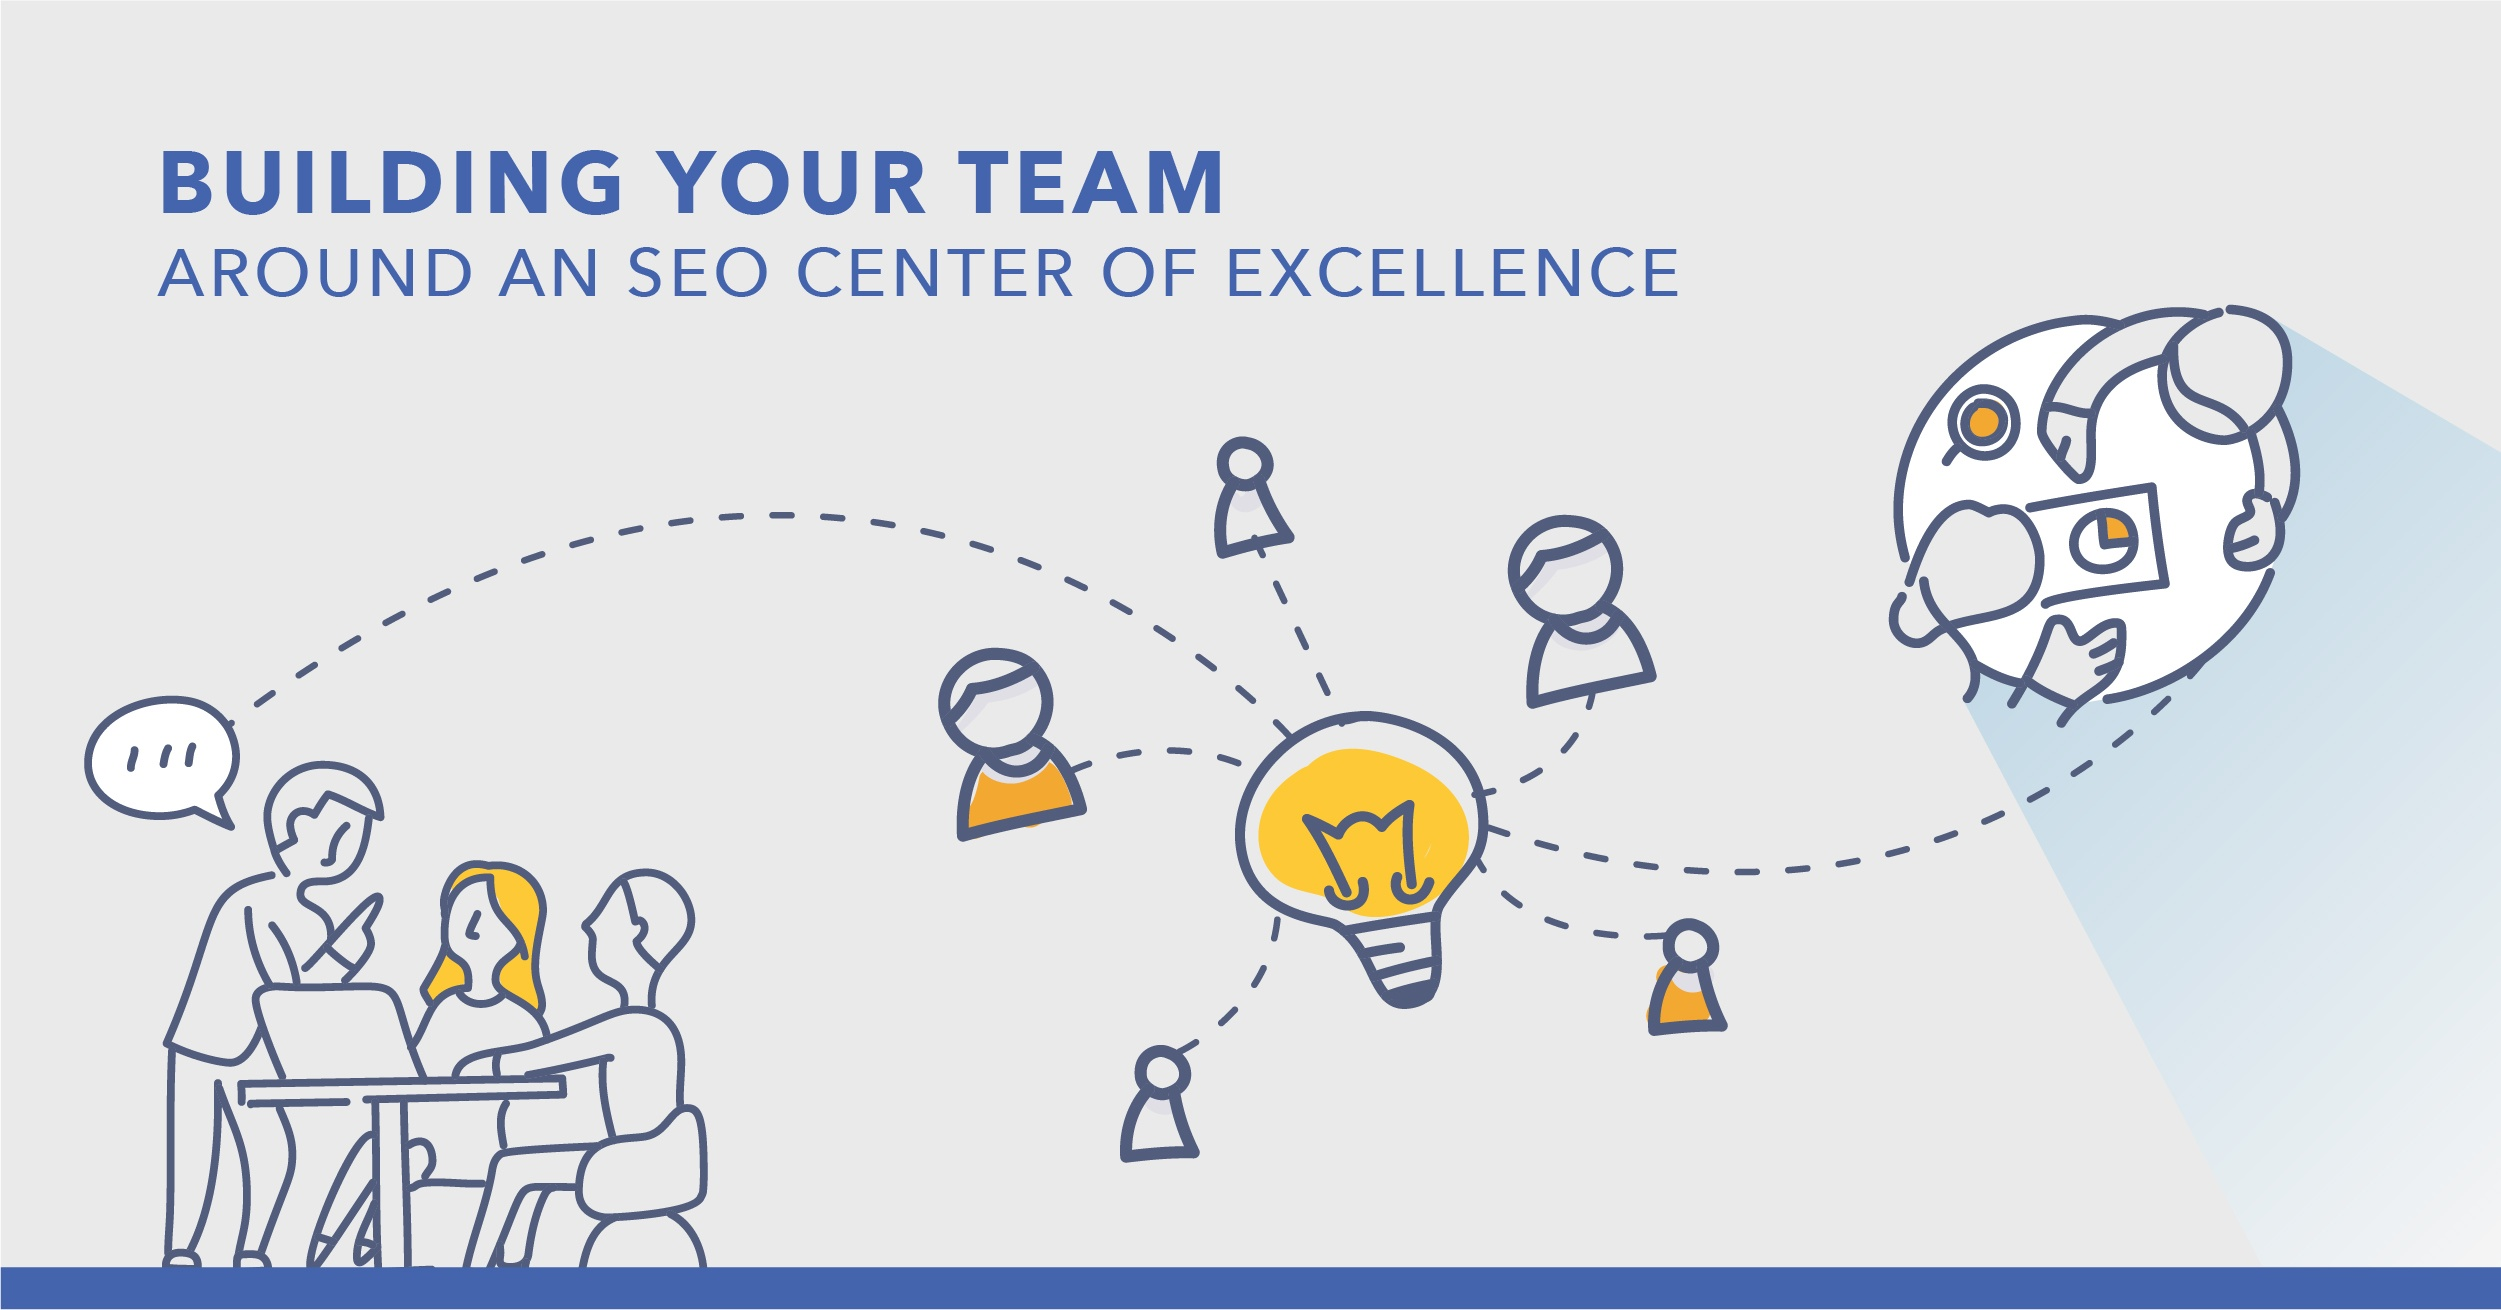 How to Build Your Team Around an SEO Center of Excellence - Featured Image